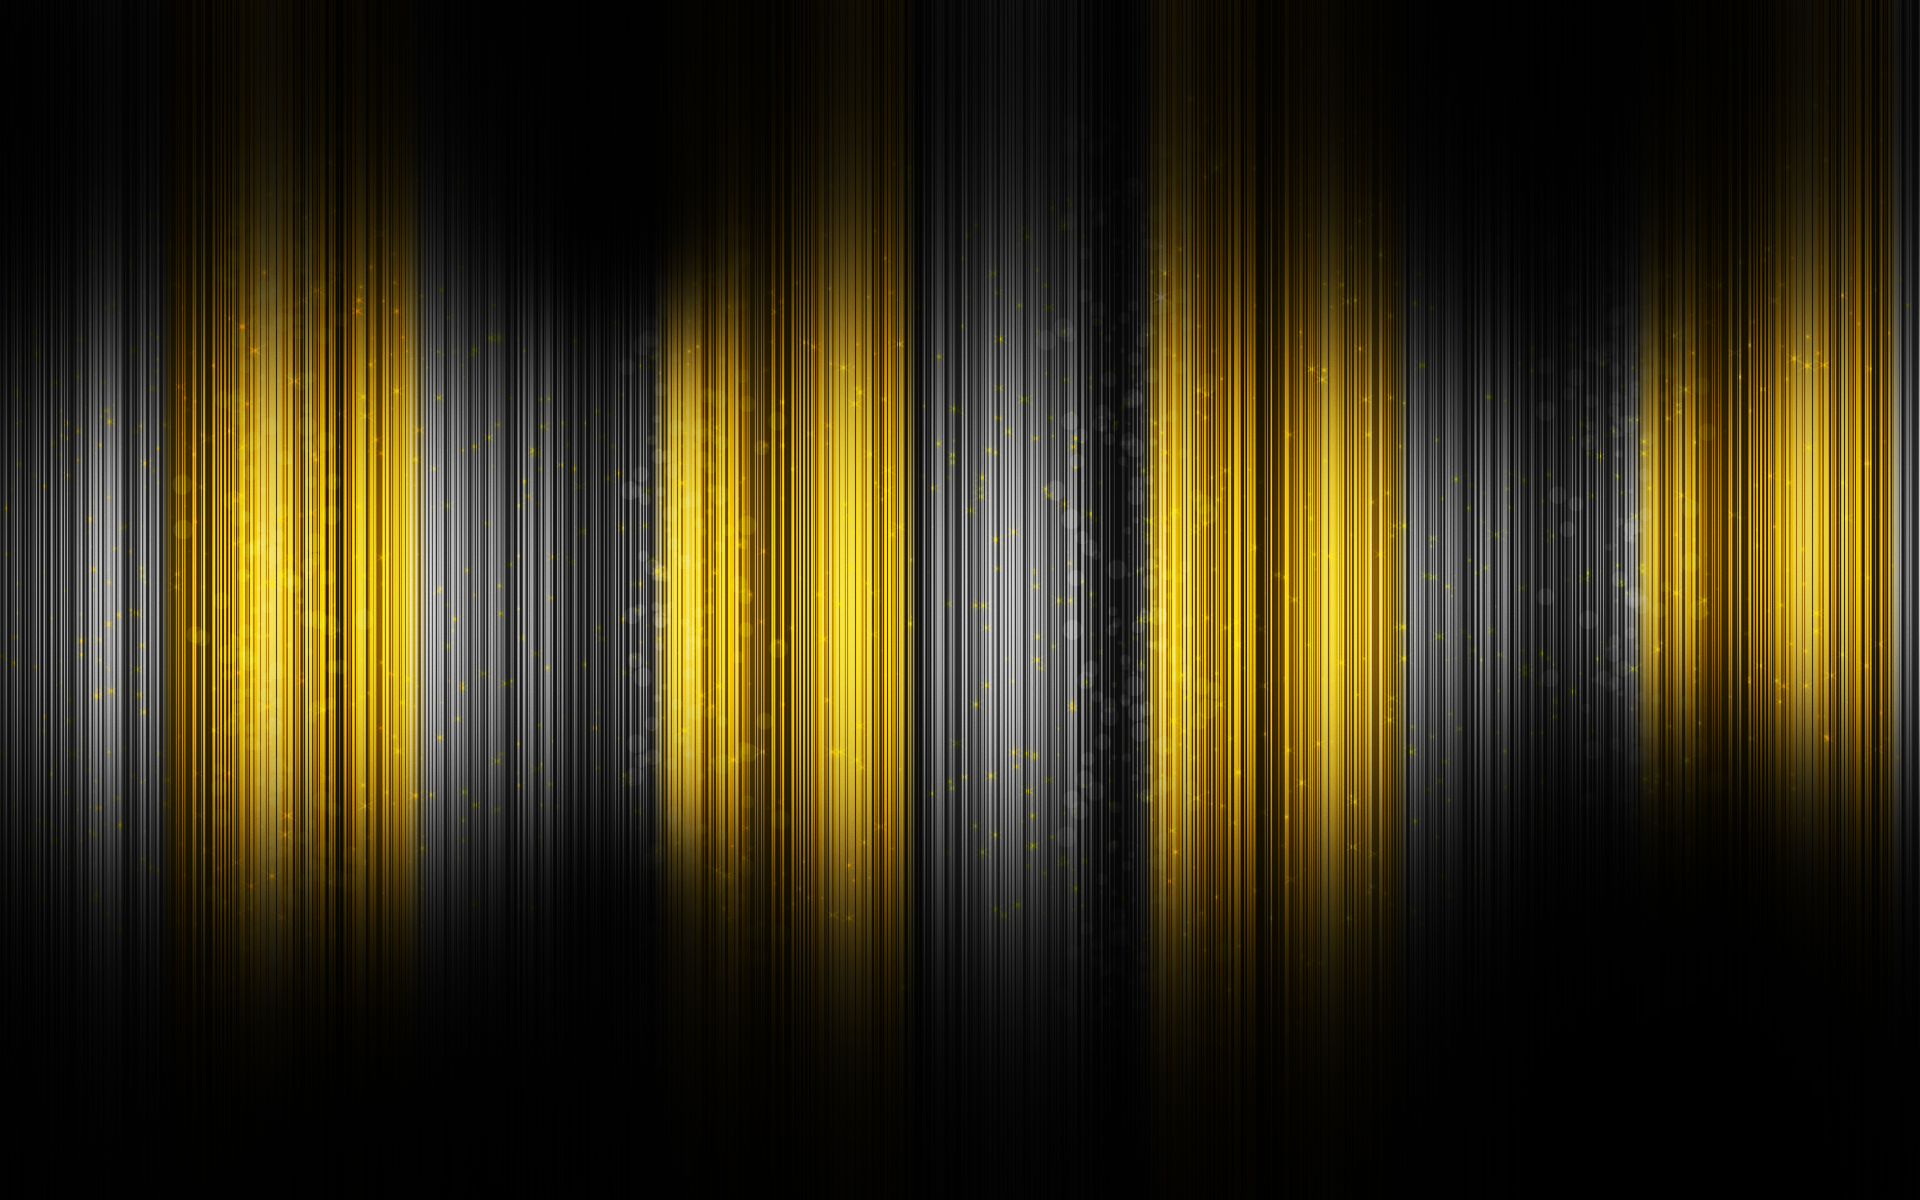 Yellow Wallpaper Sparknotes High Resolution Wallpaper Full Size 1920x1200